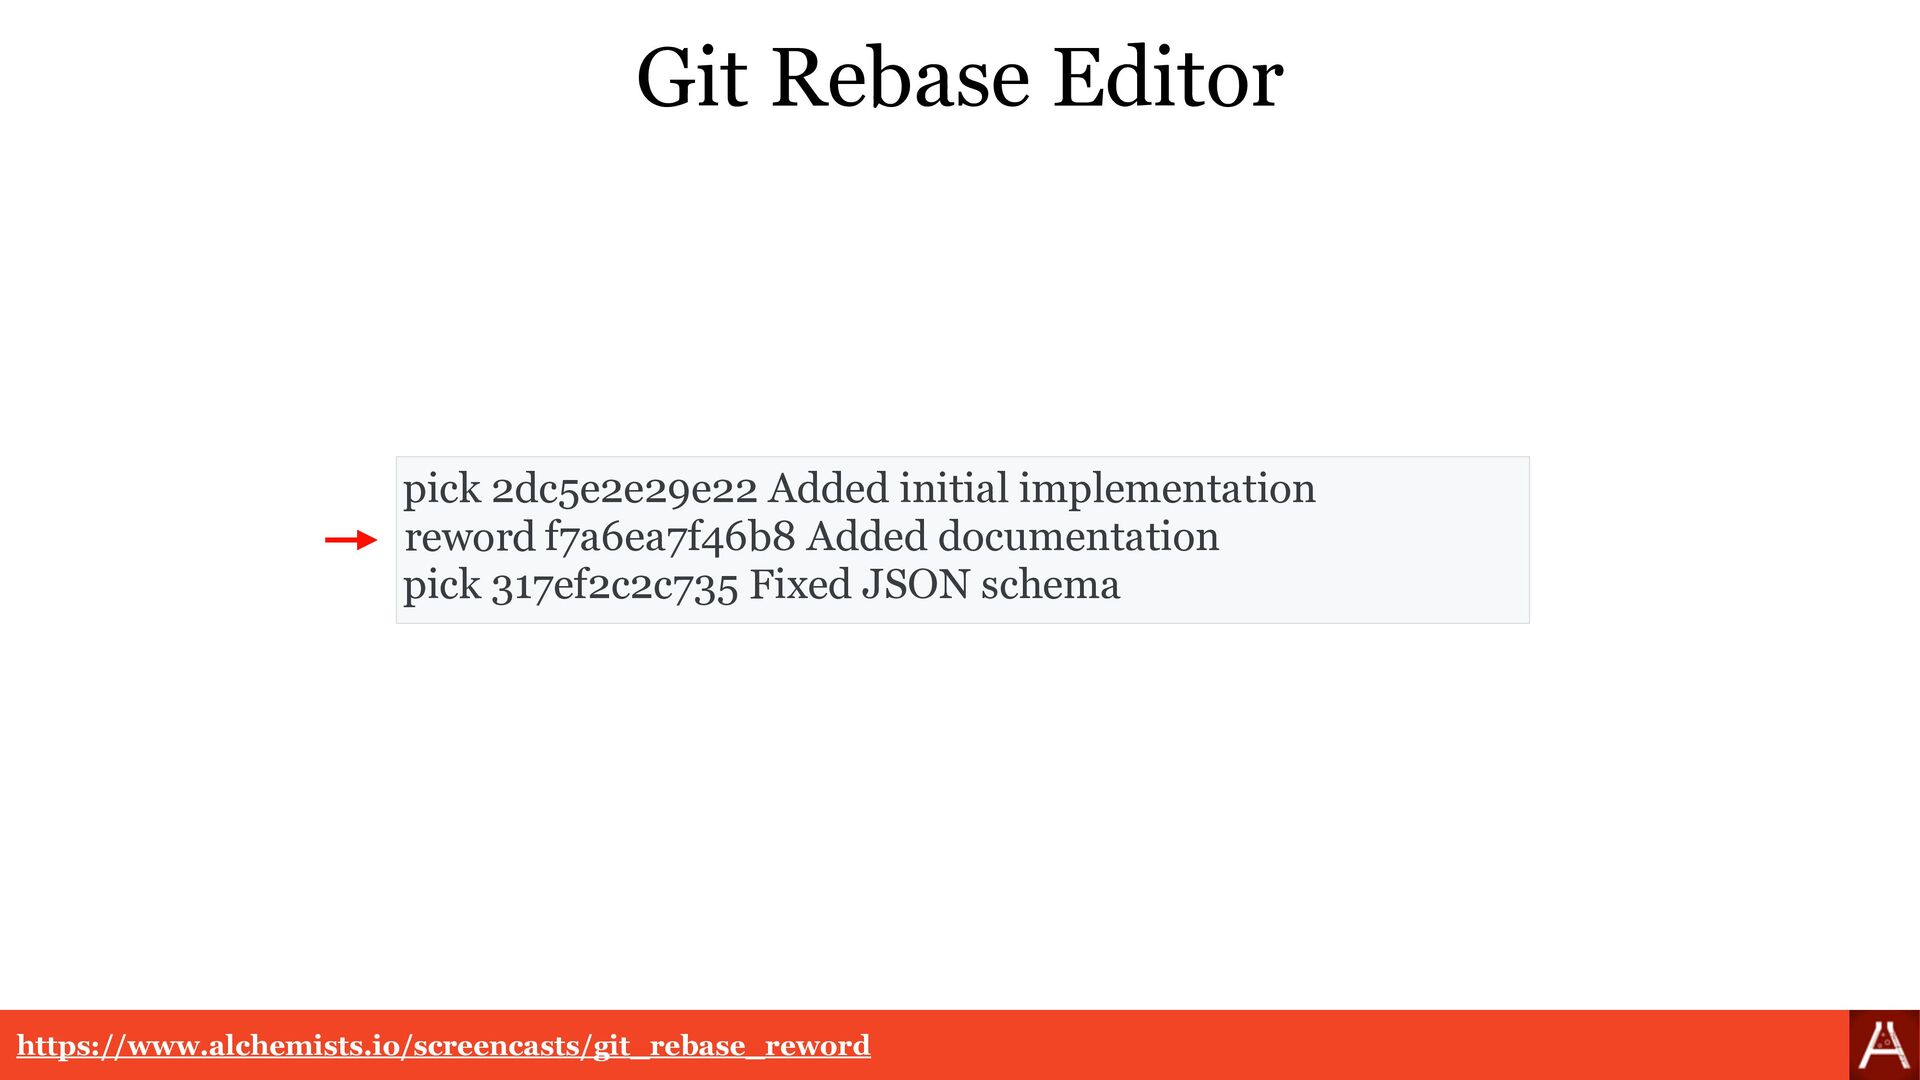 Git Rebase Reword https://www.alchemists.io/scr...